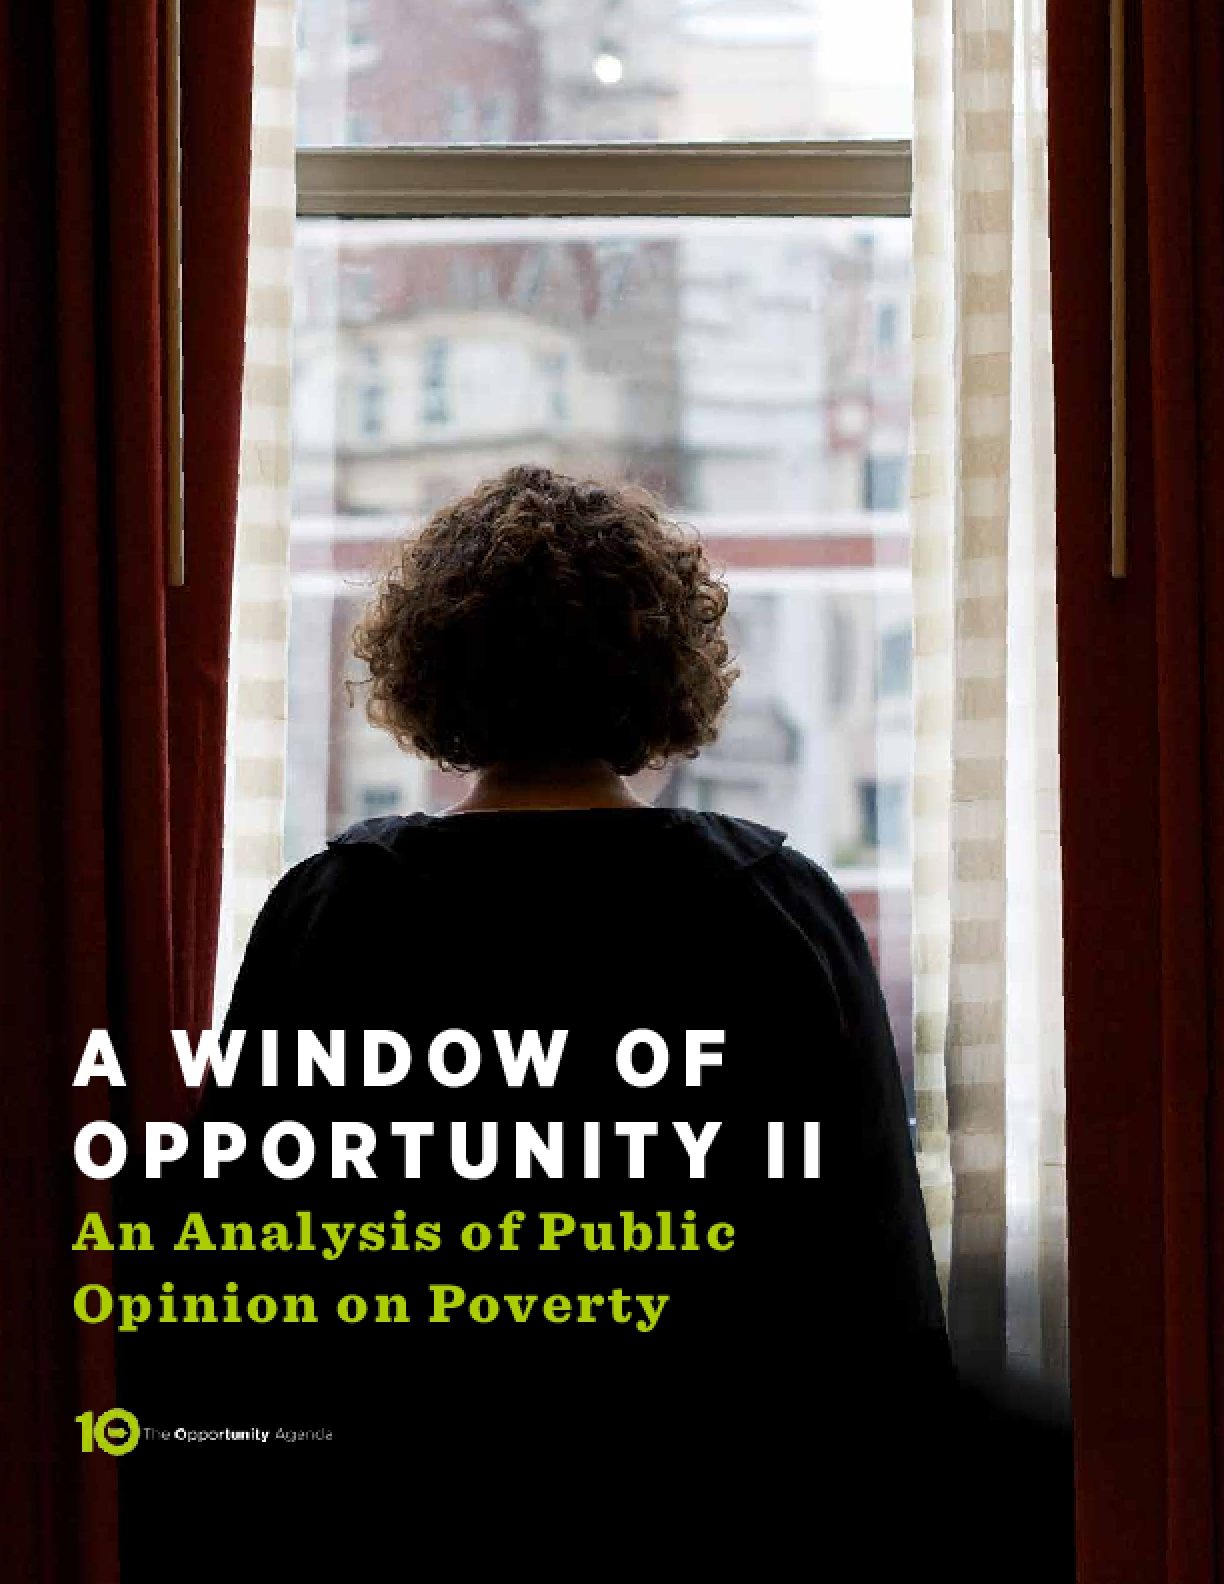 A Window Of Opportunity II: An Analysis of Public Opinion on Poverty